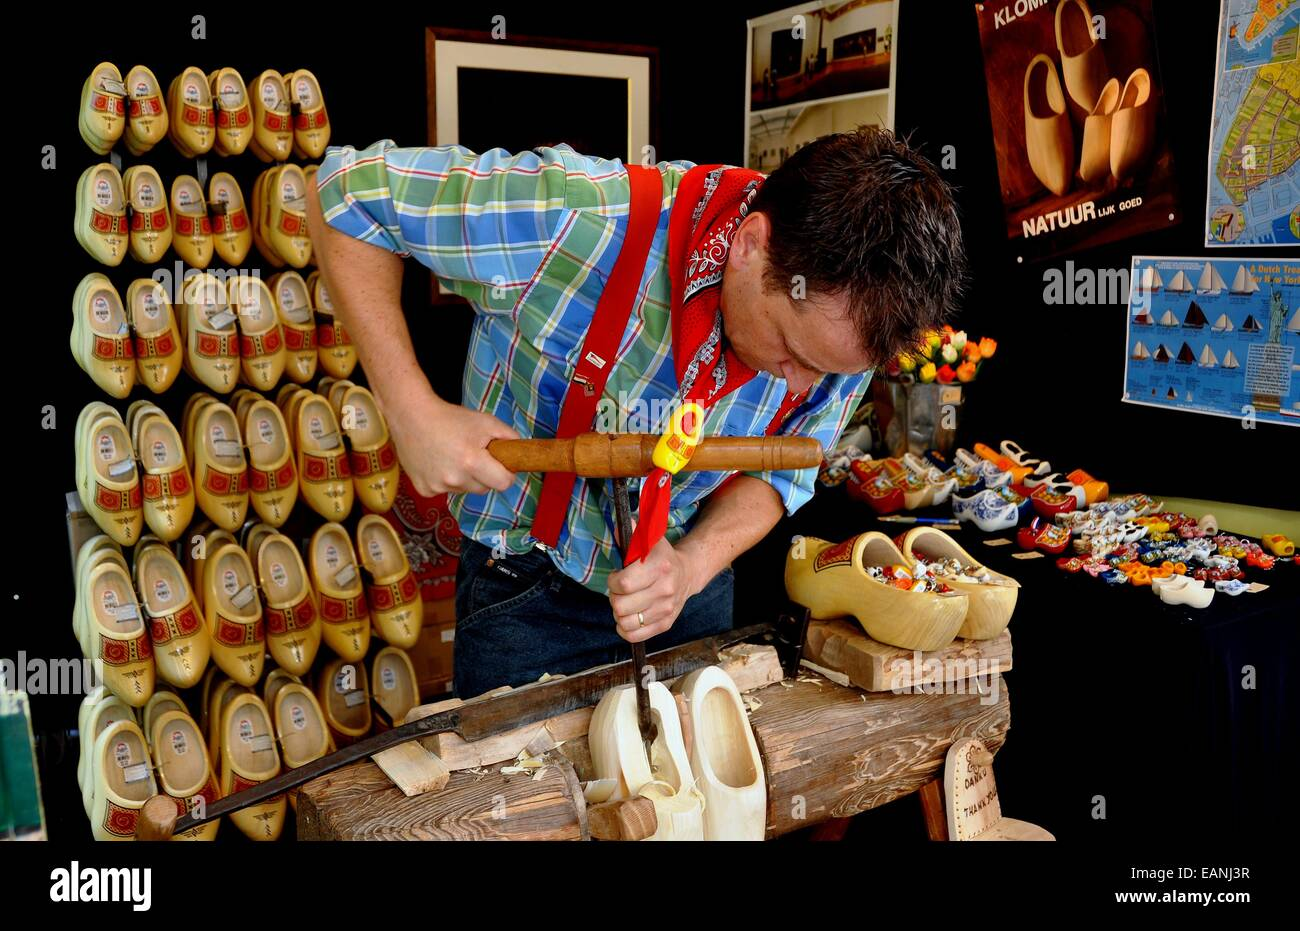 Nyc Craftsman Fashioning A Pair Of Wooden Shoes Called Klompen In